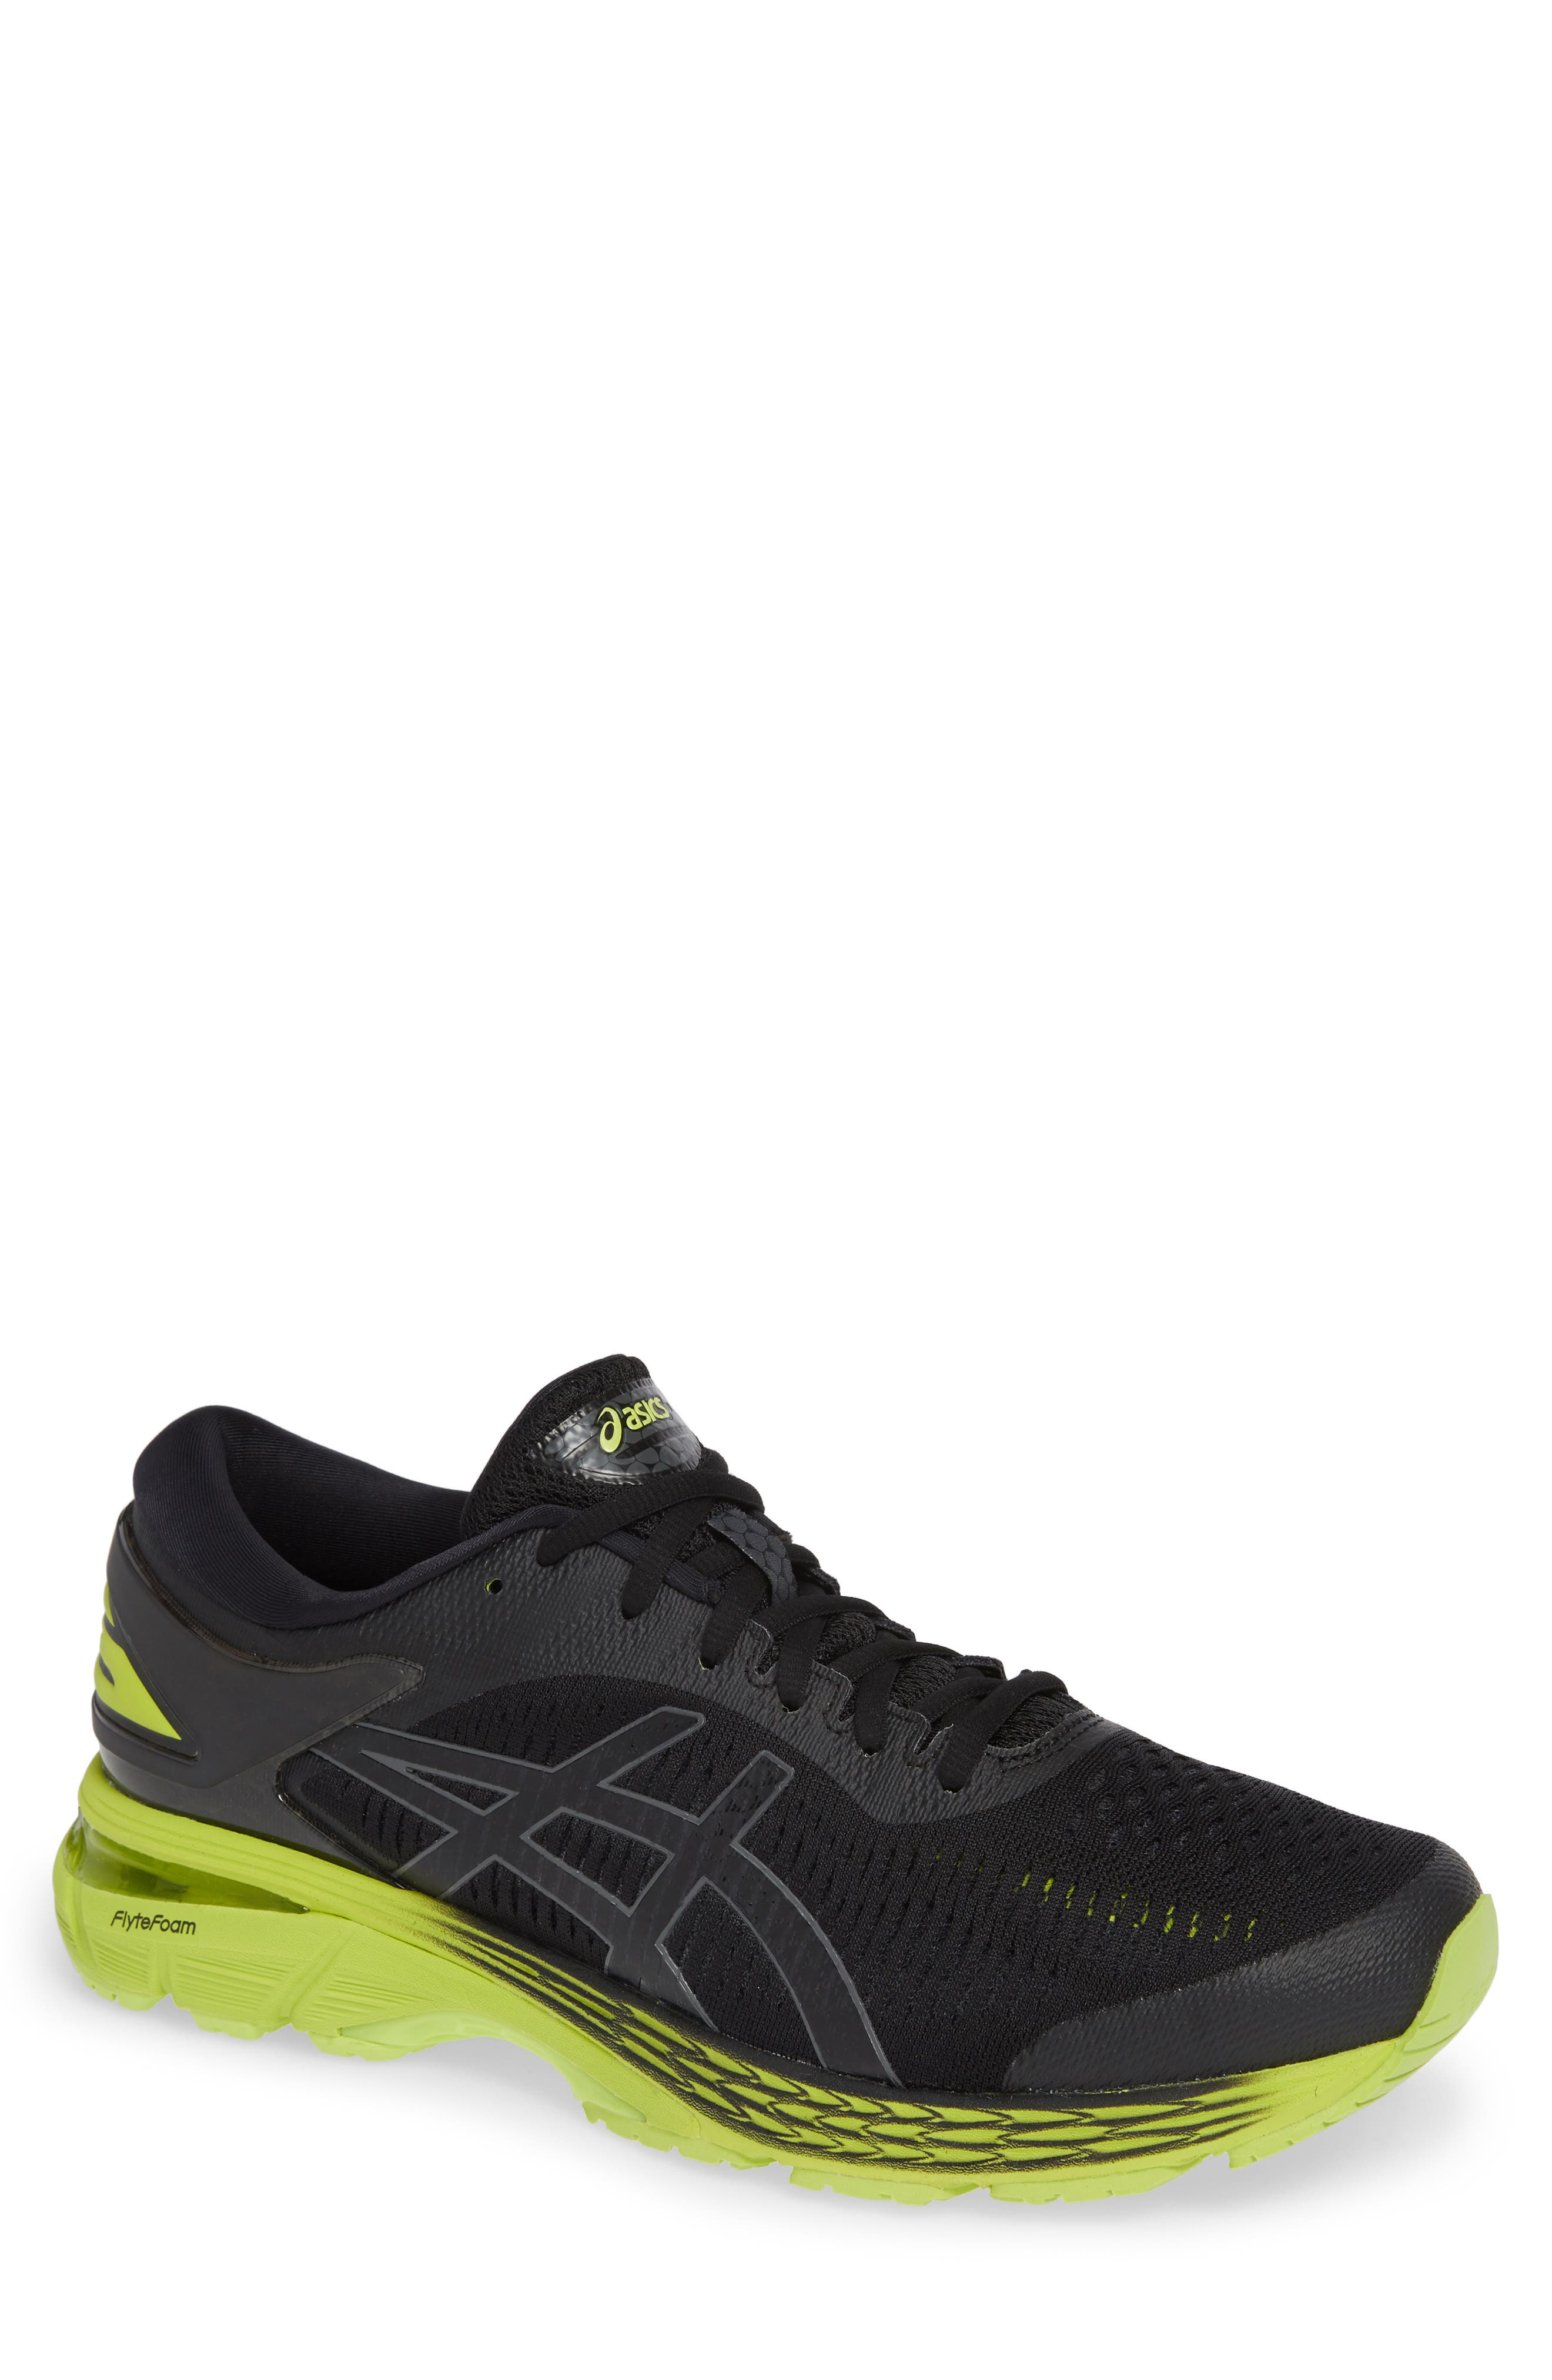 GEL-Kayano<sup>®</sup> 25 Running Shoe,                             Main thumbnail 1, color,                             BLACK/ NEON LIME